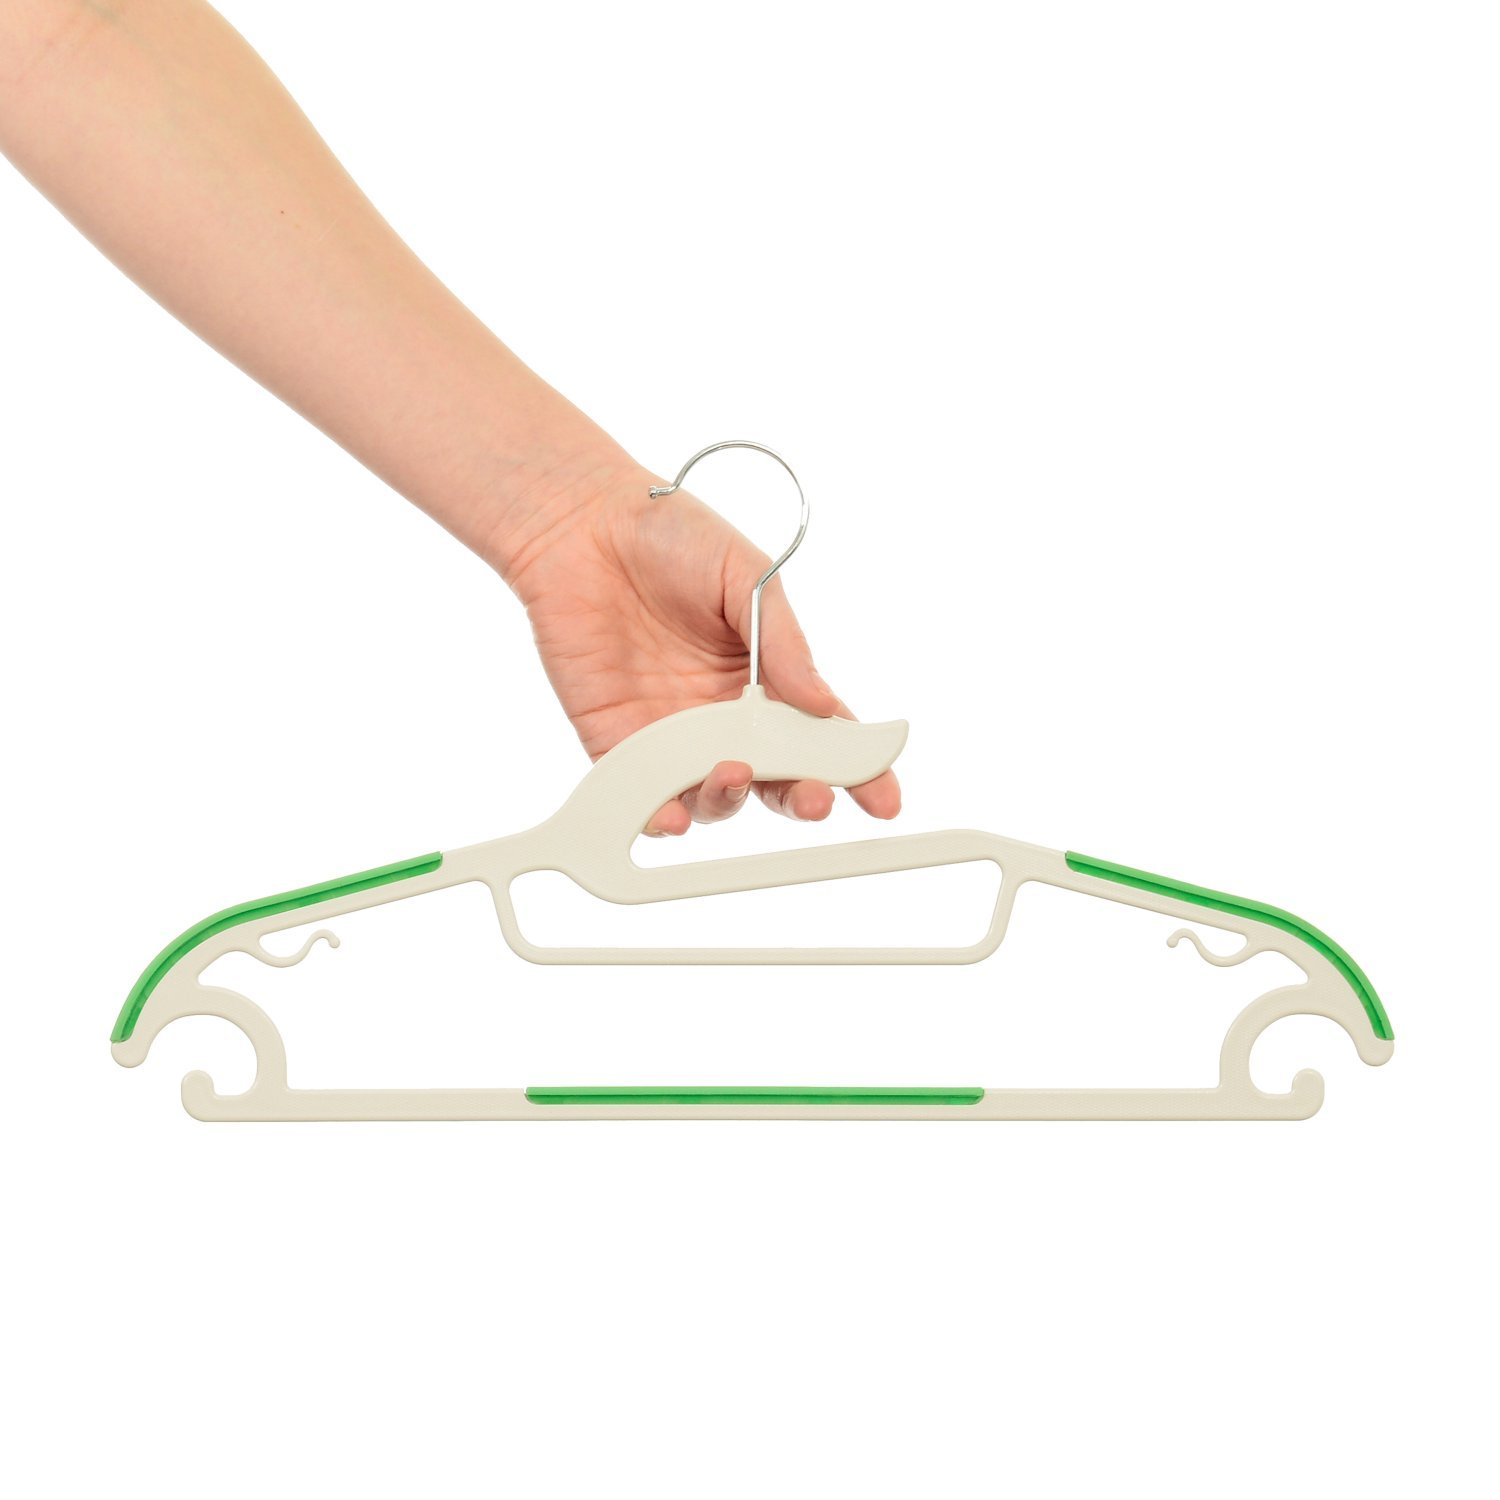 Slim Shape Saves Space Helps You Choose Your Clothes /& Look Your Best Set of 20 Summer Organize Your Closet Care for Your Clothes HOOKED Non Slip Clothes Hangers Strong ABS Plastic Won/'t Snap!